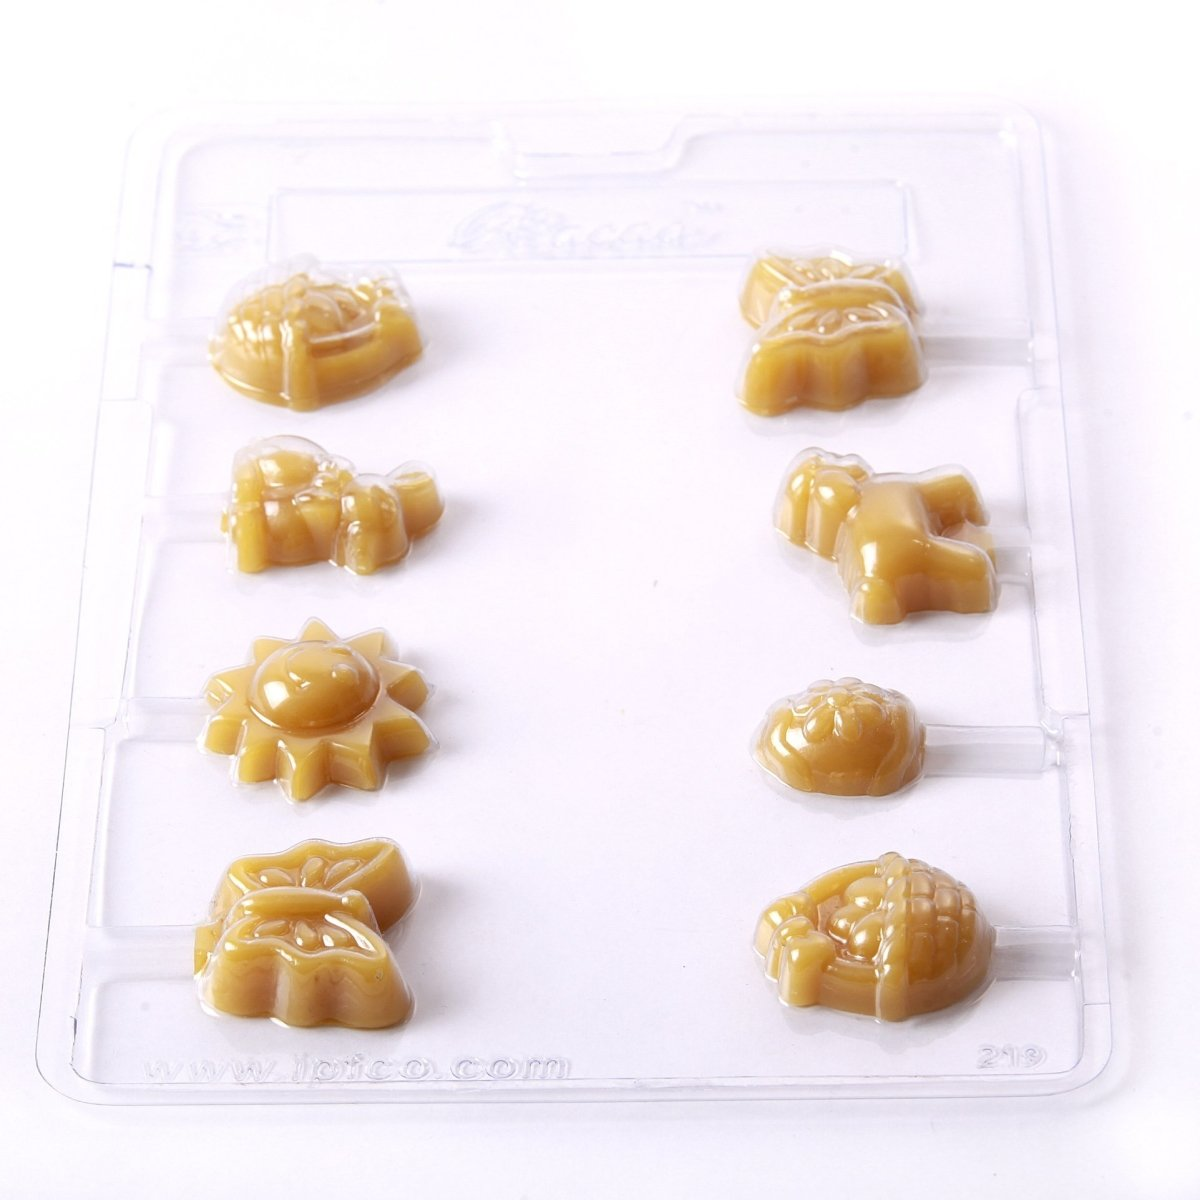 Easter Lollies (B) Chocolate/Sweet/Soap/Plaster/Bath Bomb Mould #219 (8 cavity) - Mystic Moments UK